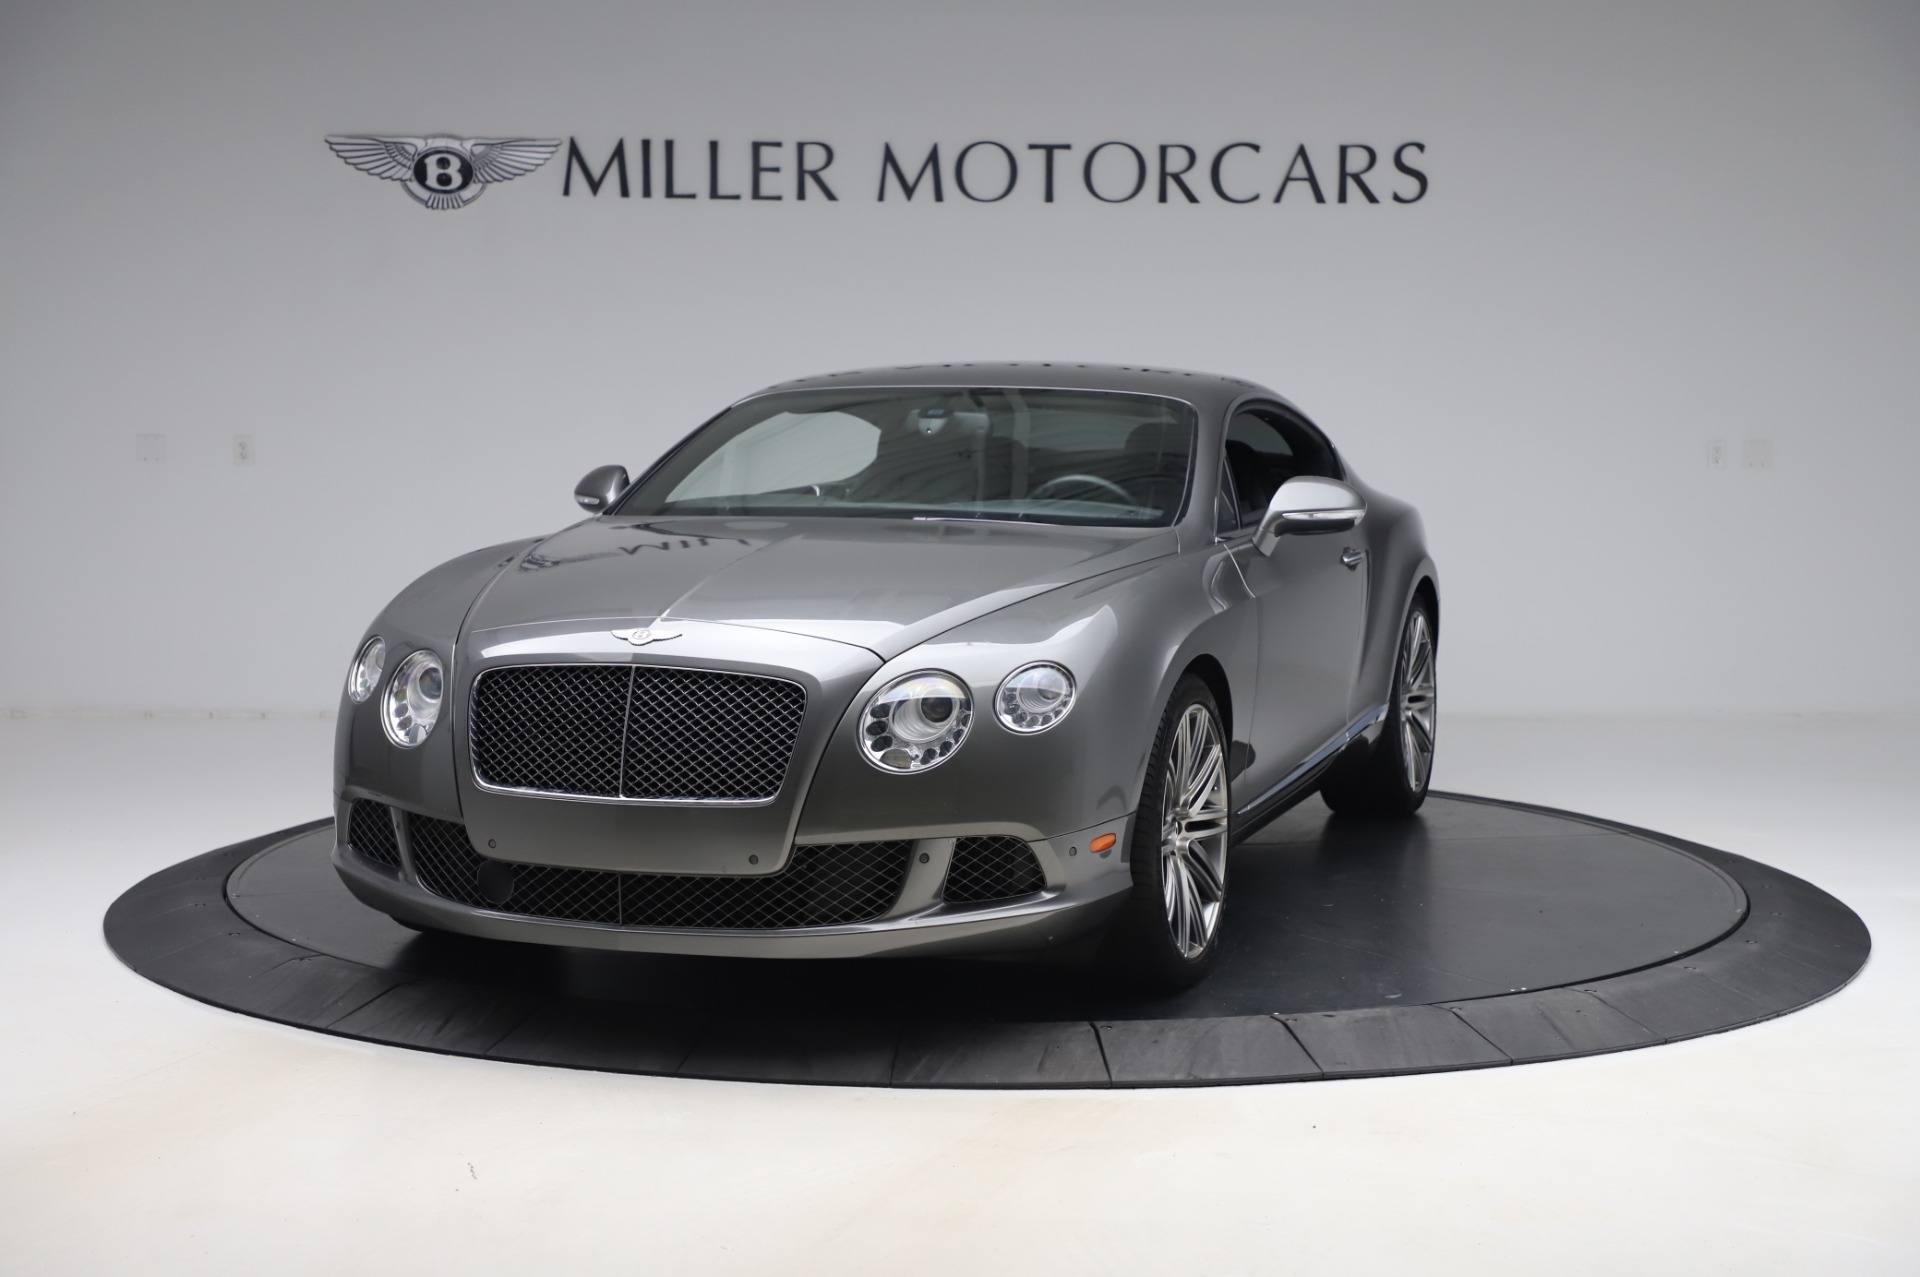 Used 2013 Bentley Continental GT Speed for sale Sold at Aston Martin of Greenwich in Greenwich CT 06830 1